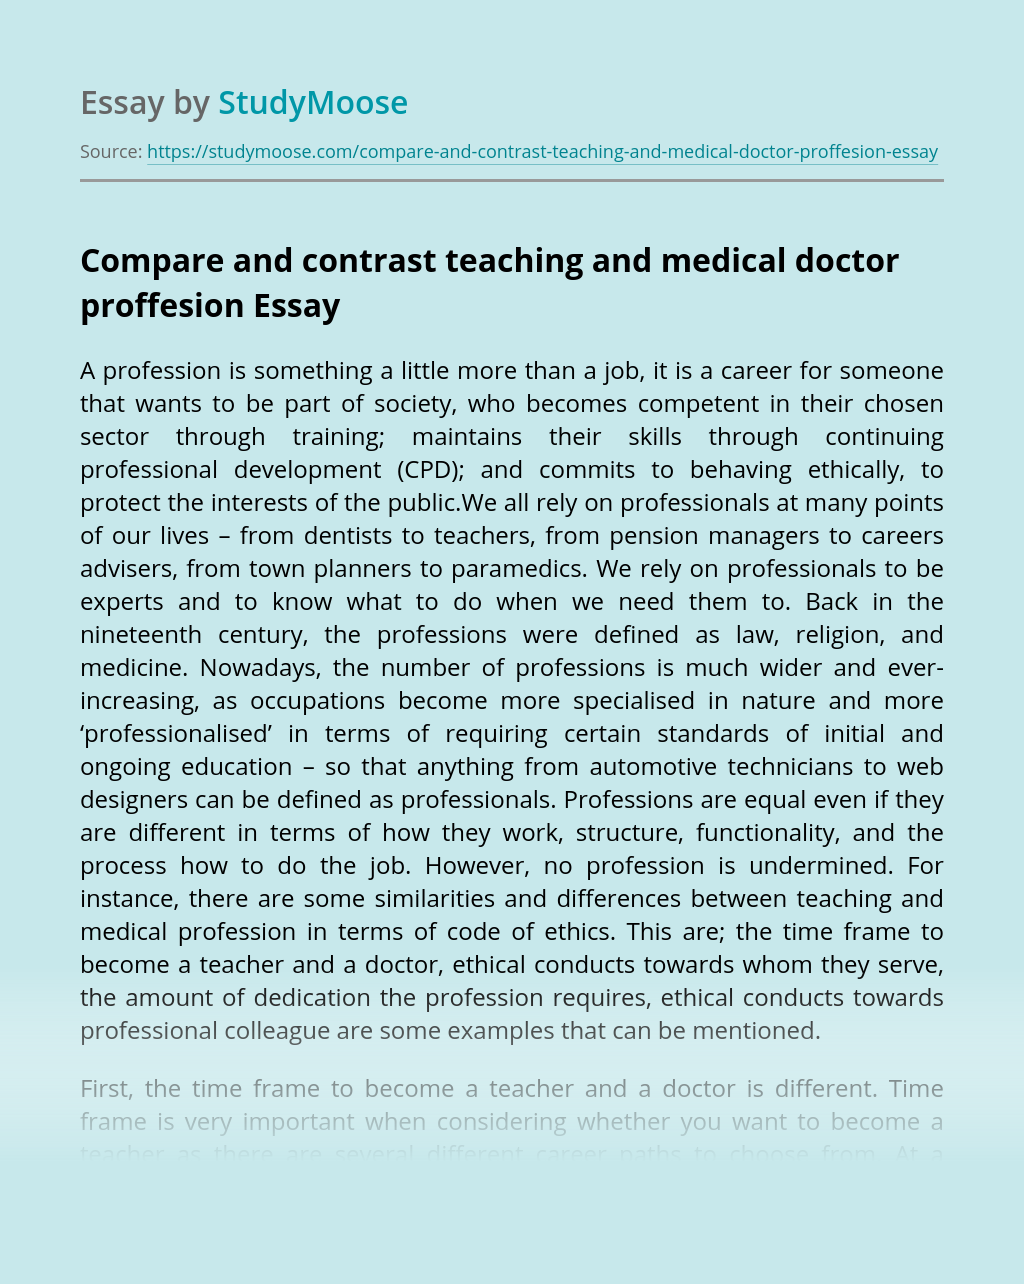 Compare and contrast teaching and medical doctor proffesion